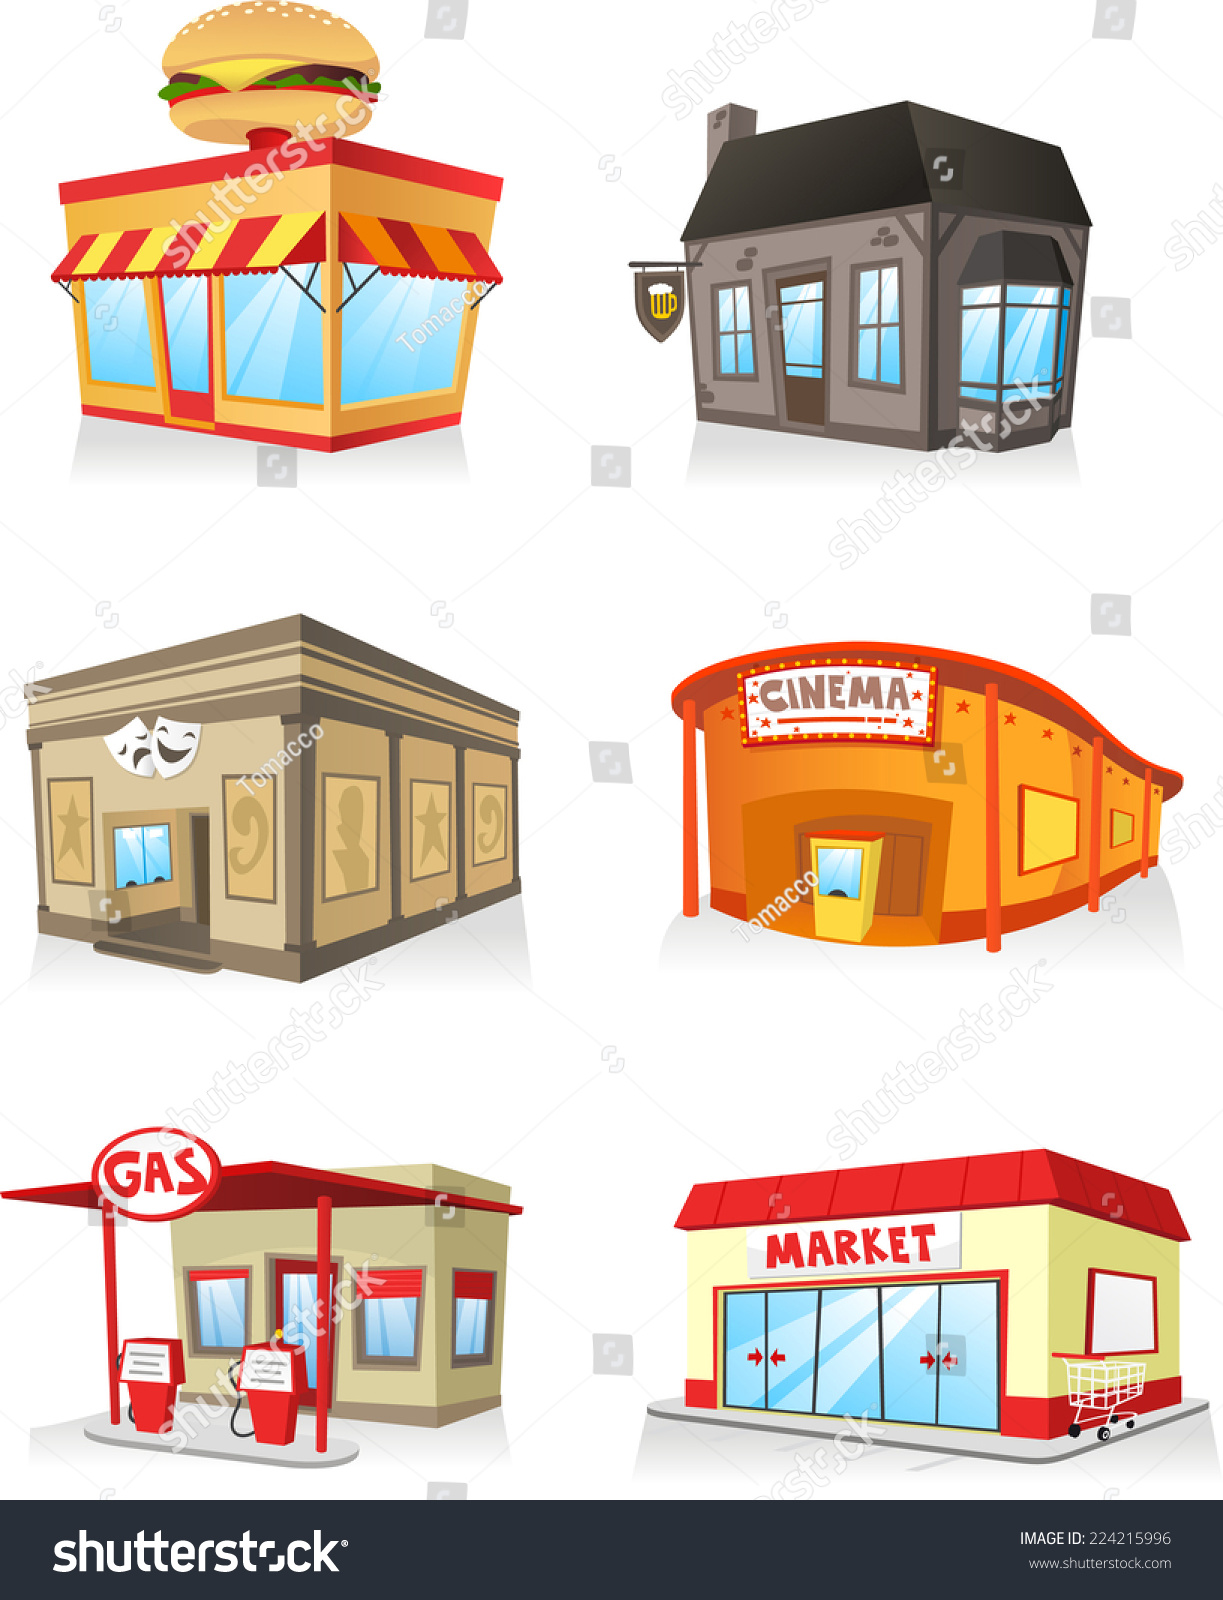 Public Building Cartoon Set Fast Food Stock Vector ... Cinema Building Cartoon